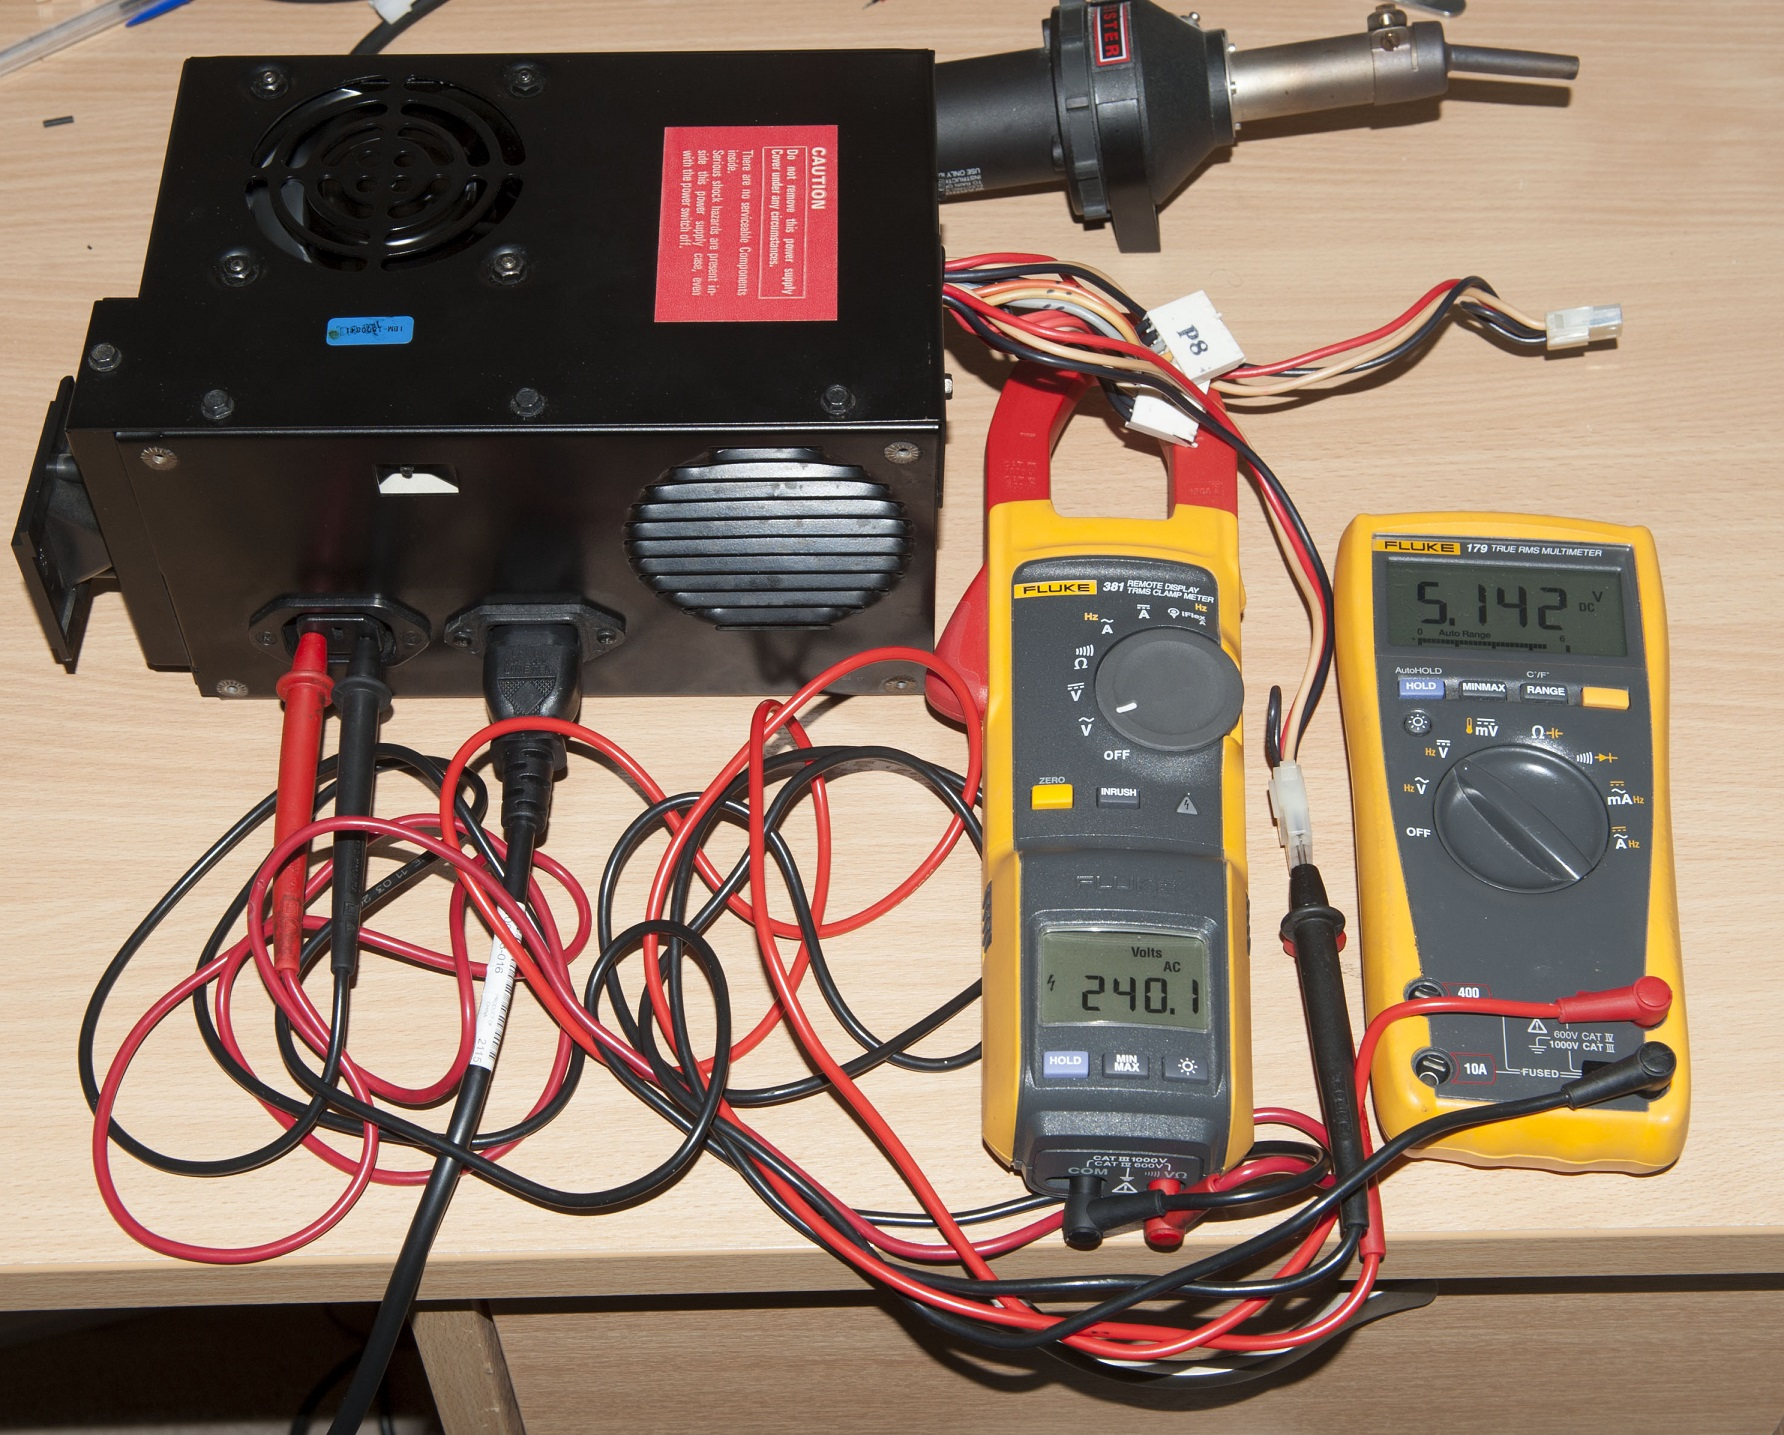 Converting An Ibm Pc 5150 Model A Black 115v Power Supply To 230v Using Transformer Step Down 12v Electrical Engineering Converted